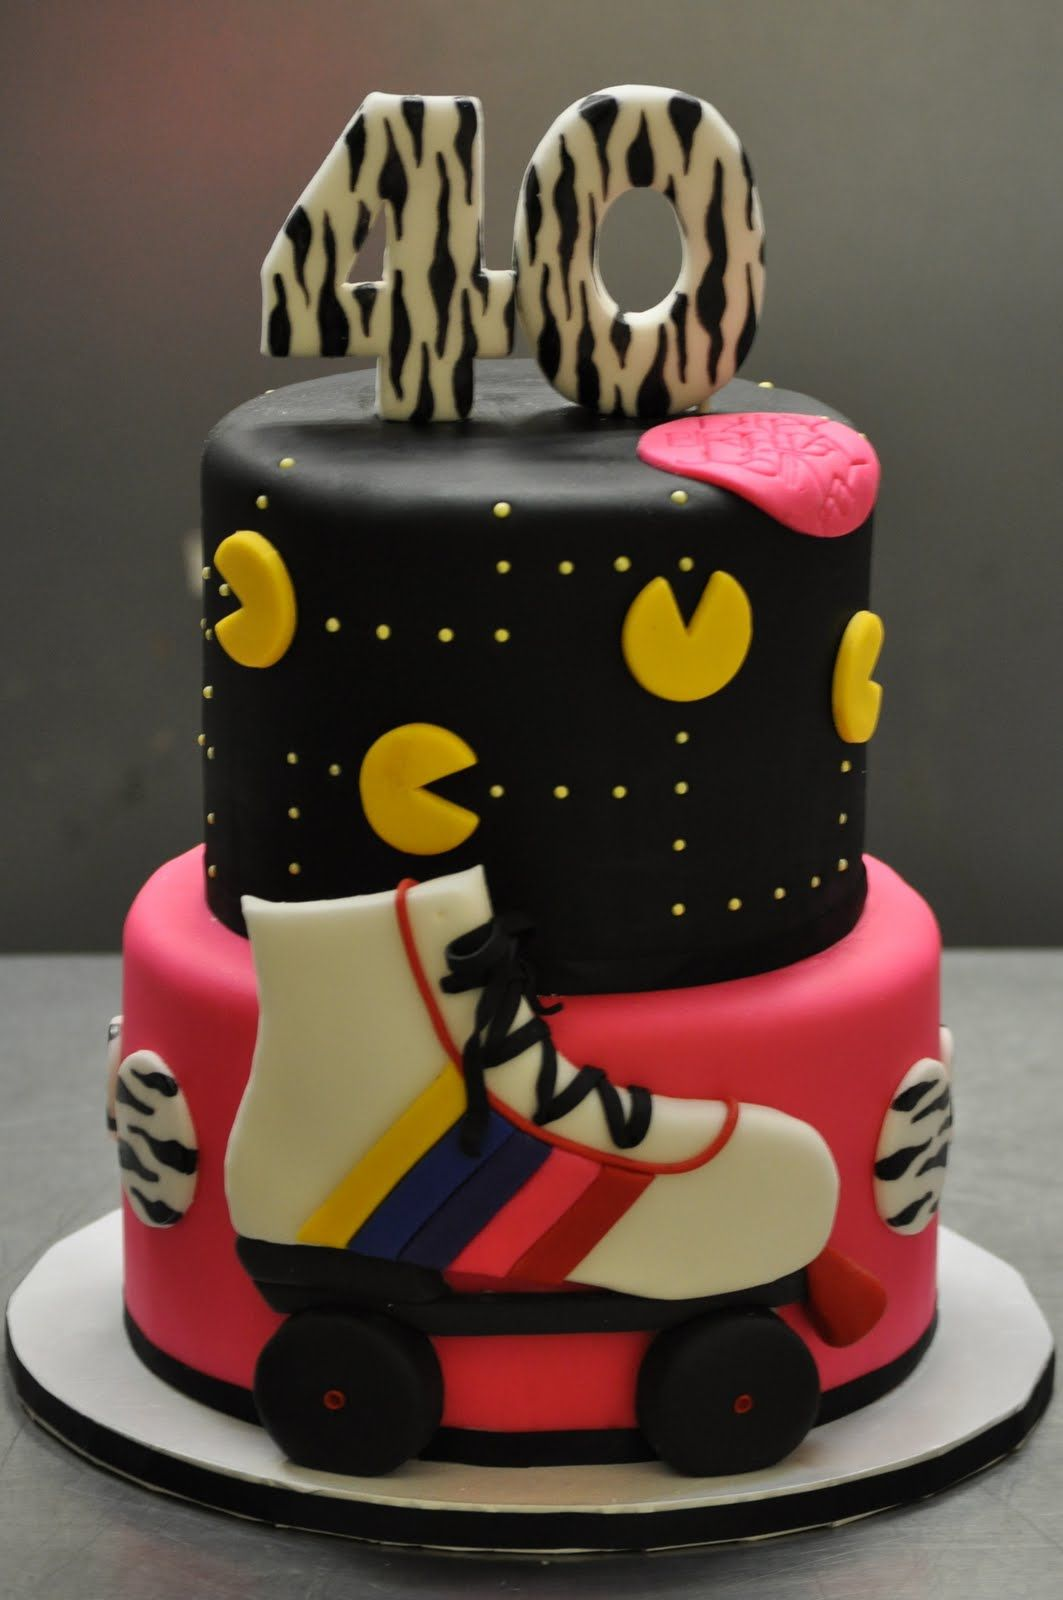 OMG!!!!! This needs to be my 40th birthday cake!!!!! And how awesome would it be to have my party at the SKATING RINK!!!!!! LMAO!